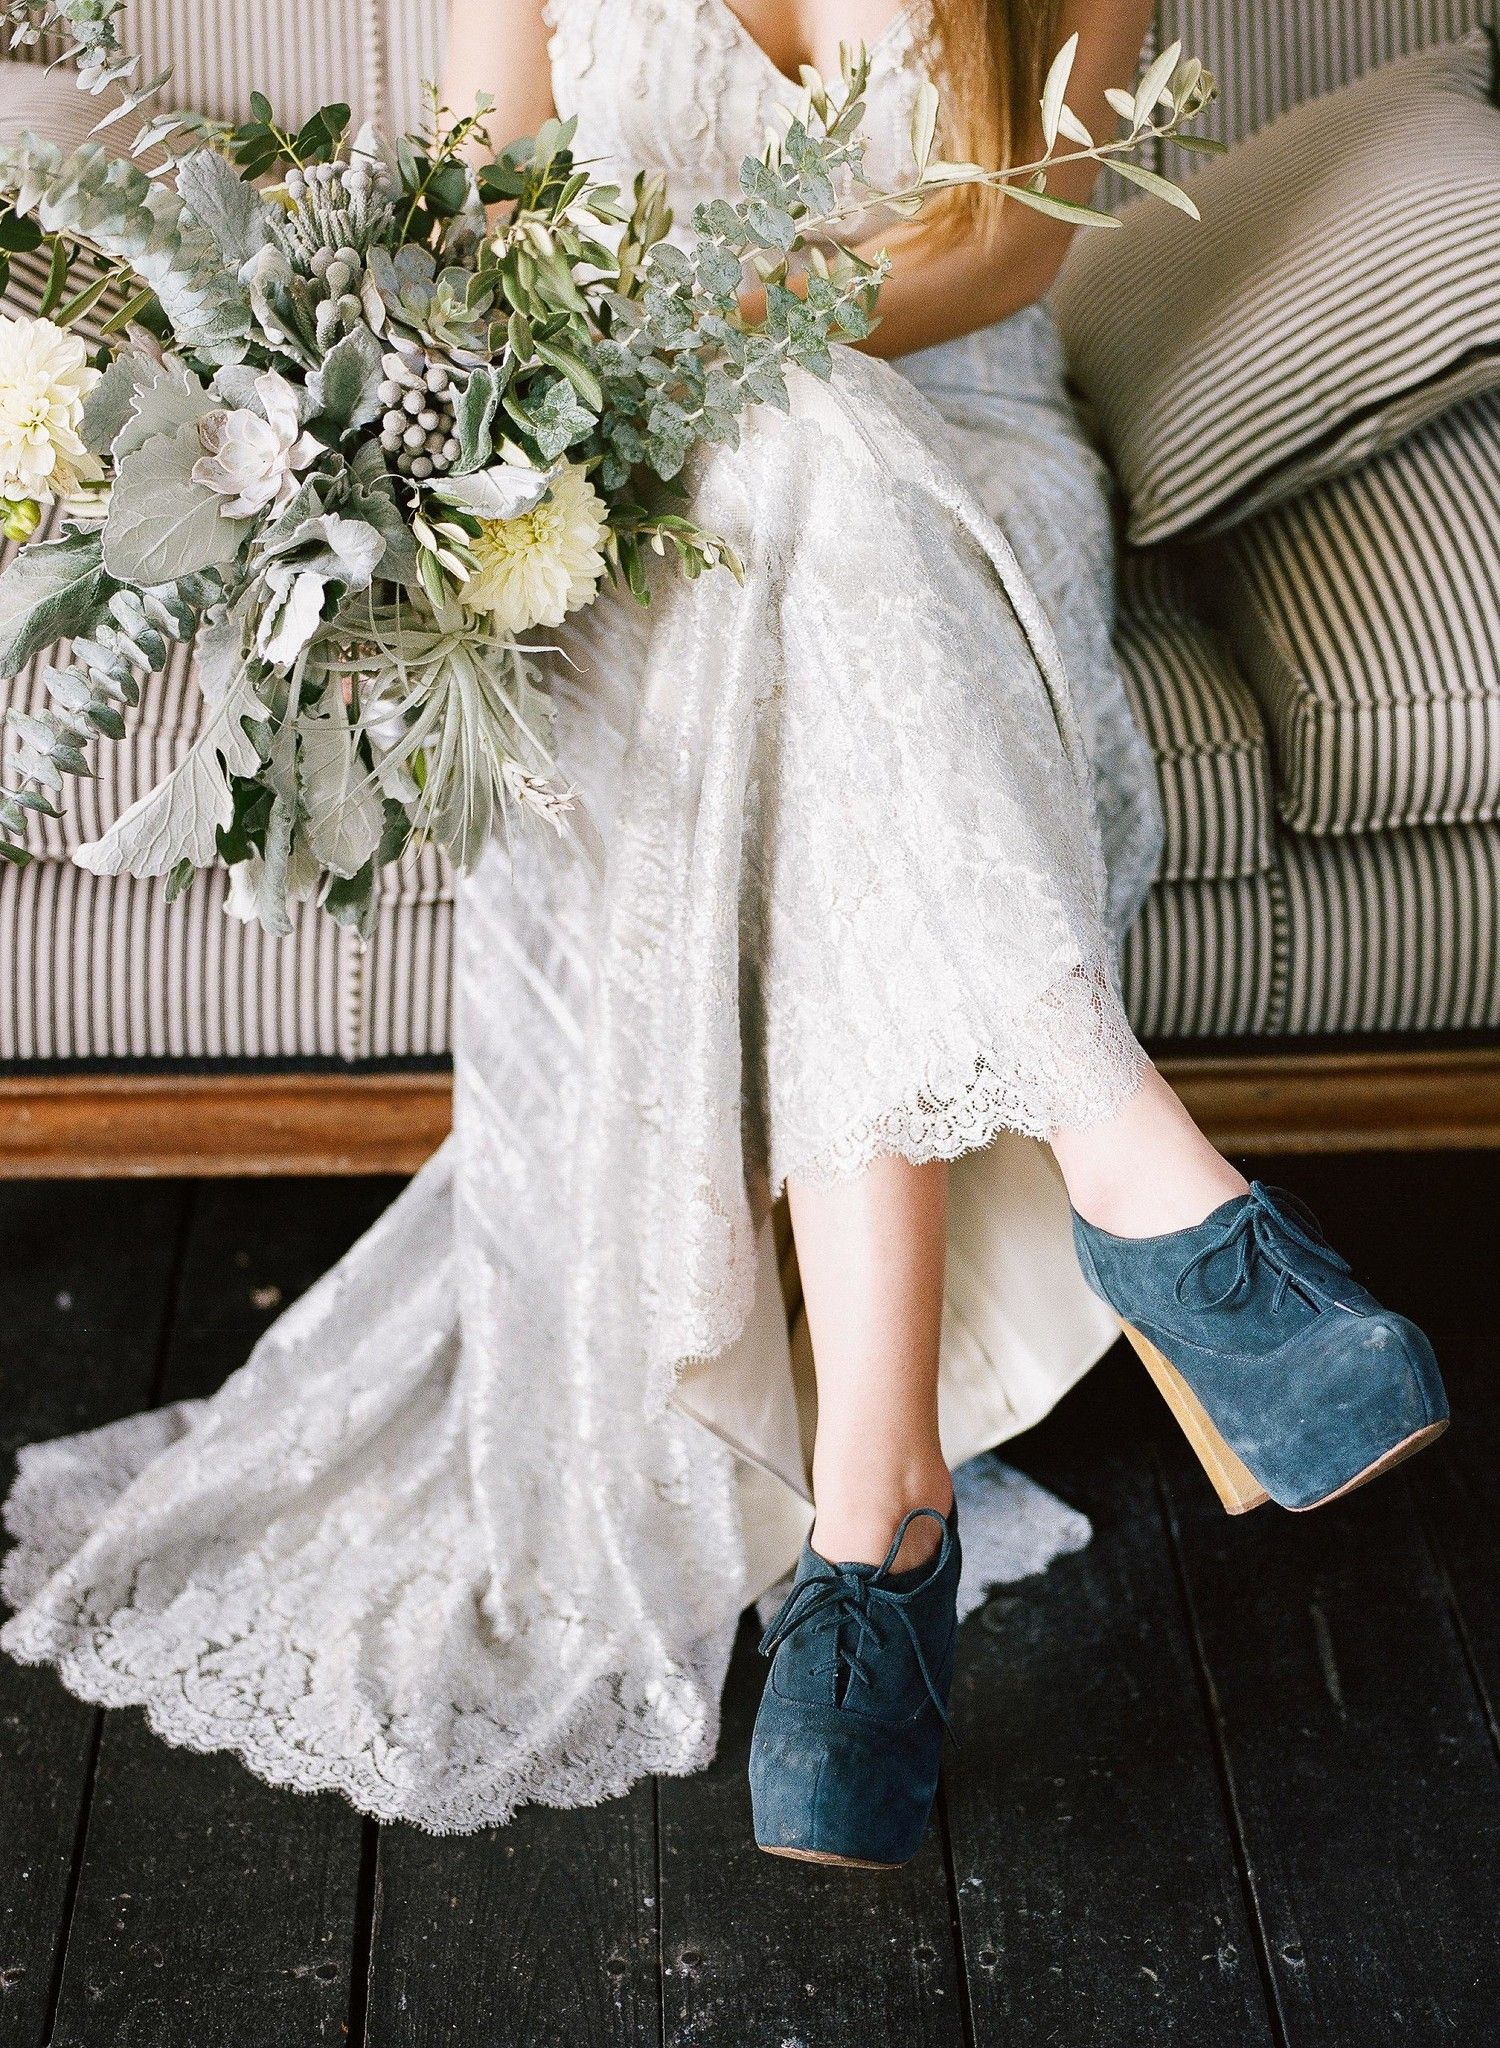 nontraditional wedding shoe ideas from stylish brides in